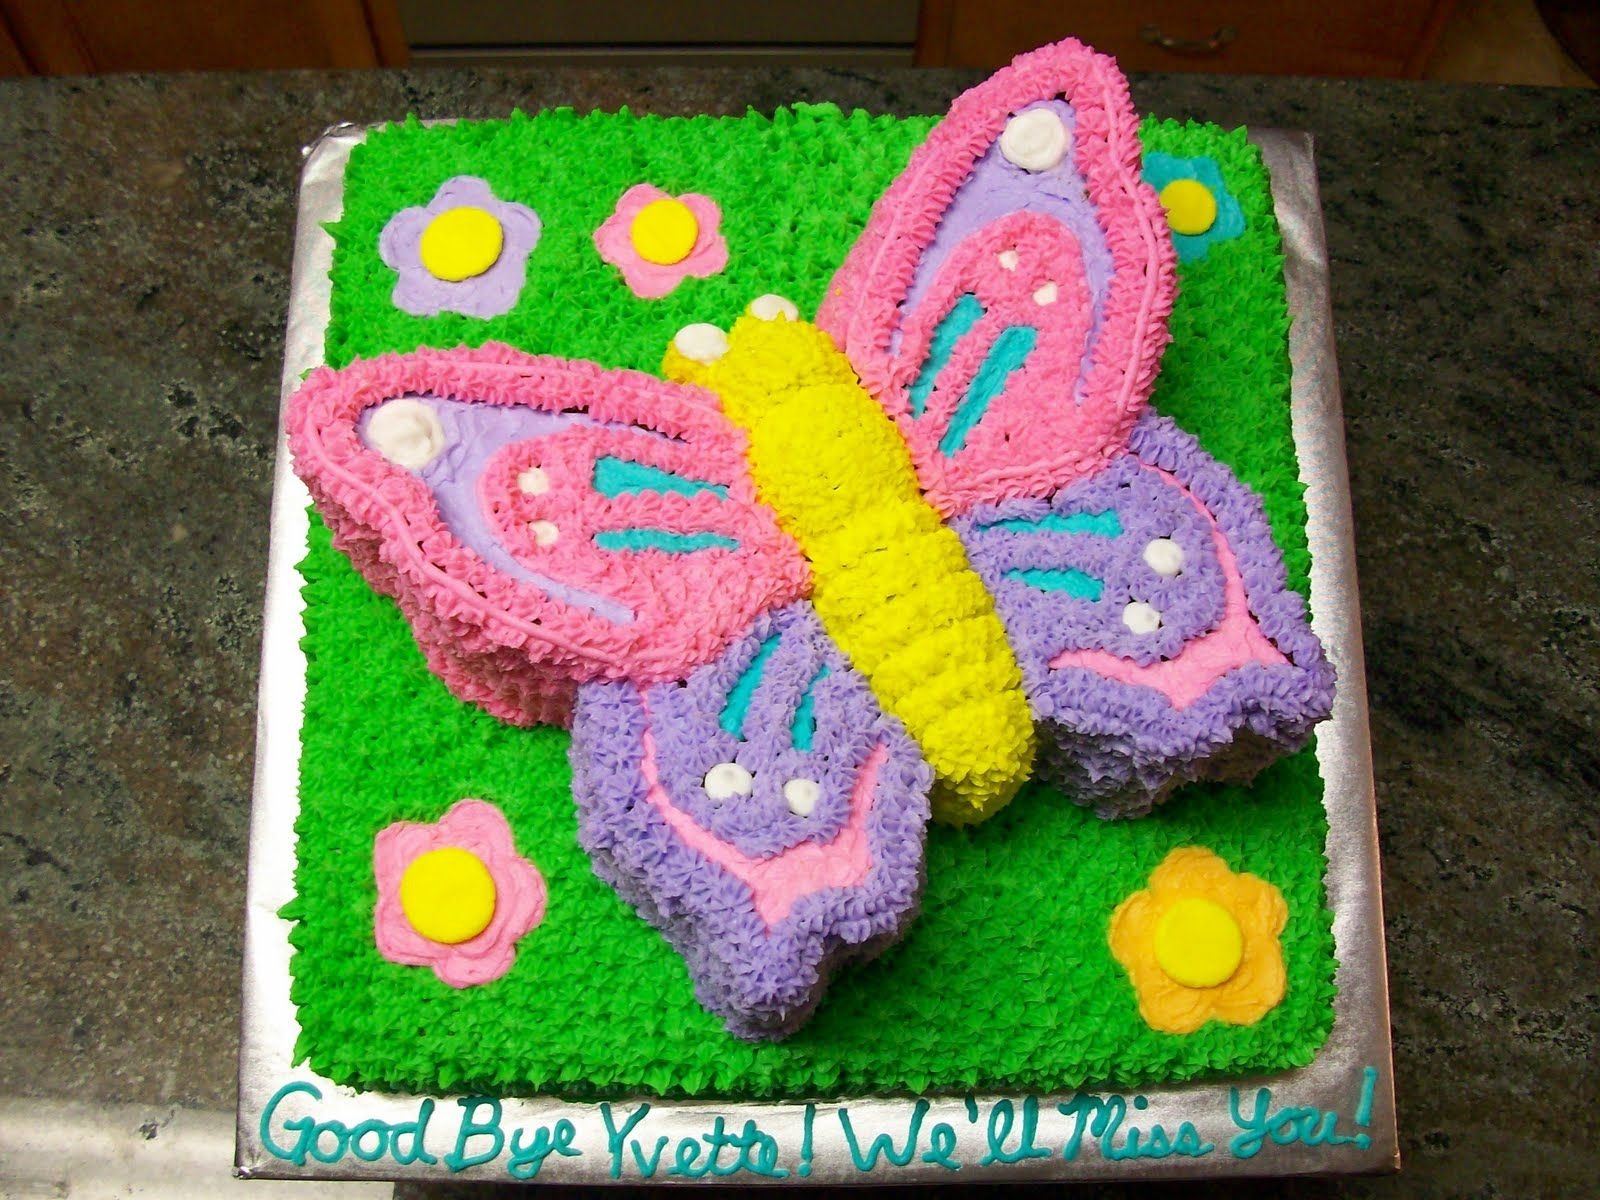 Butterfly Cake Pan Decorating Ideas : butterfly birthday cake this cake was made using the ...